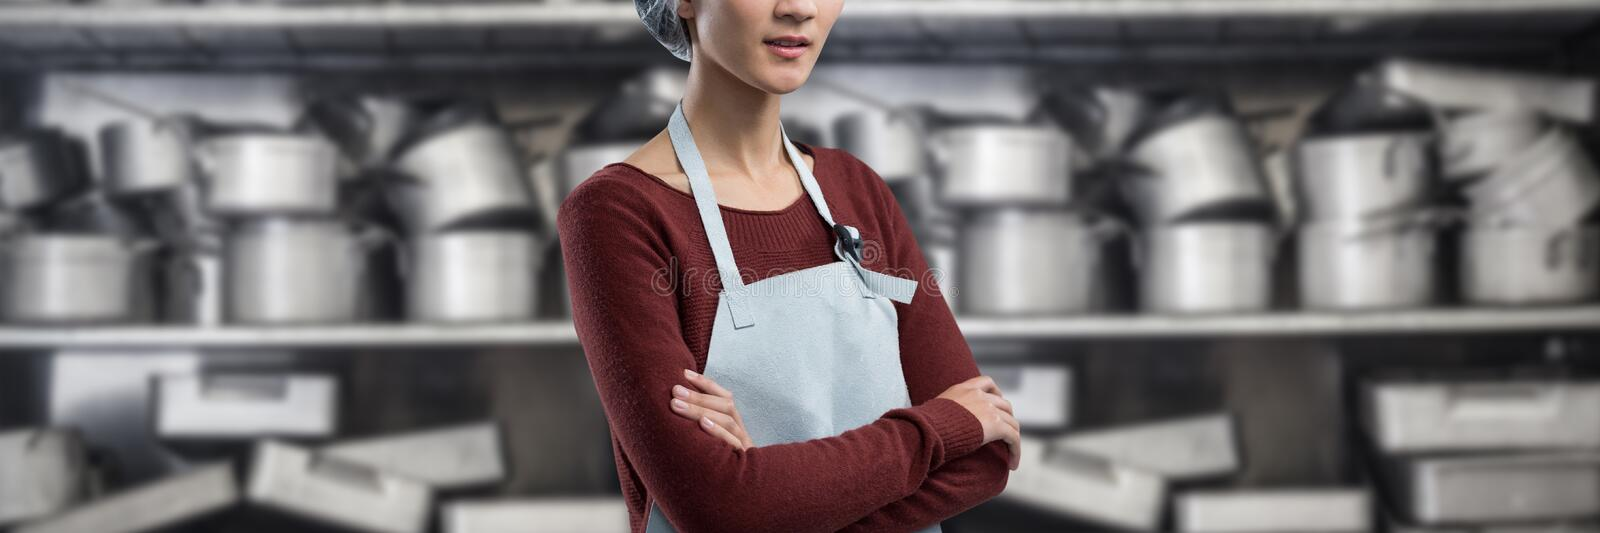 Composite image of female chef standing with arms crossed. Female chef standing with arms crossed against shelf full of pots royalty free stock photos